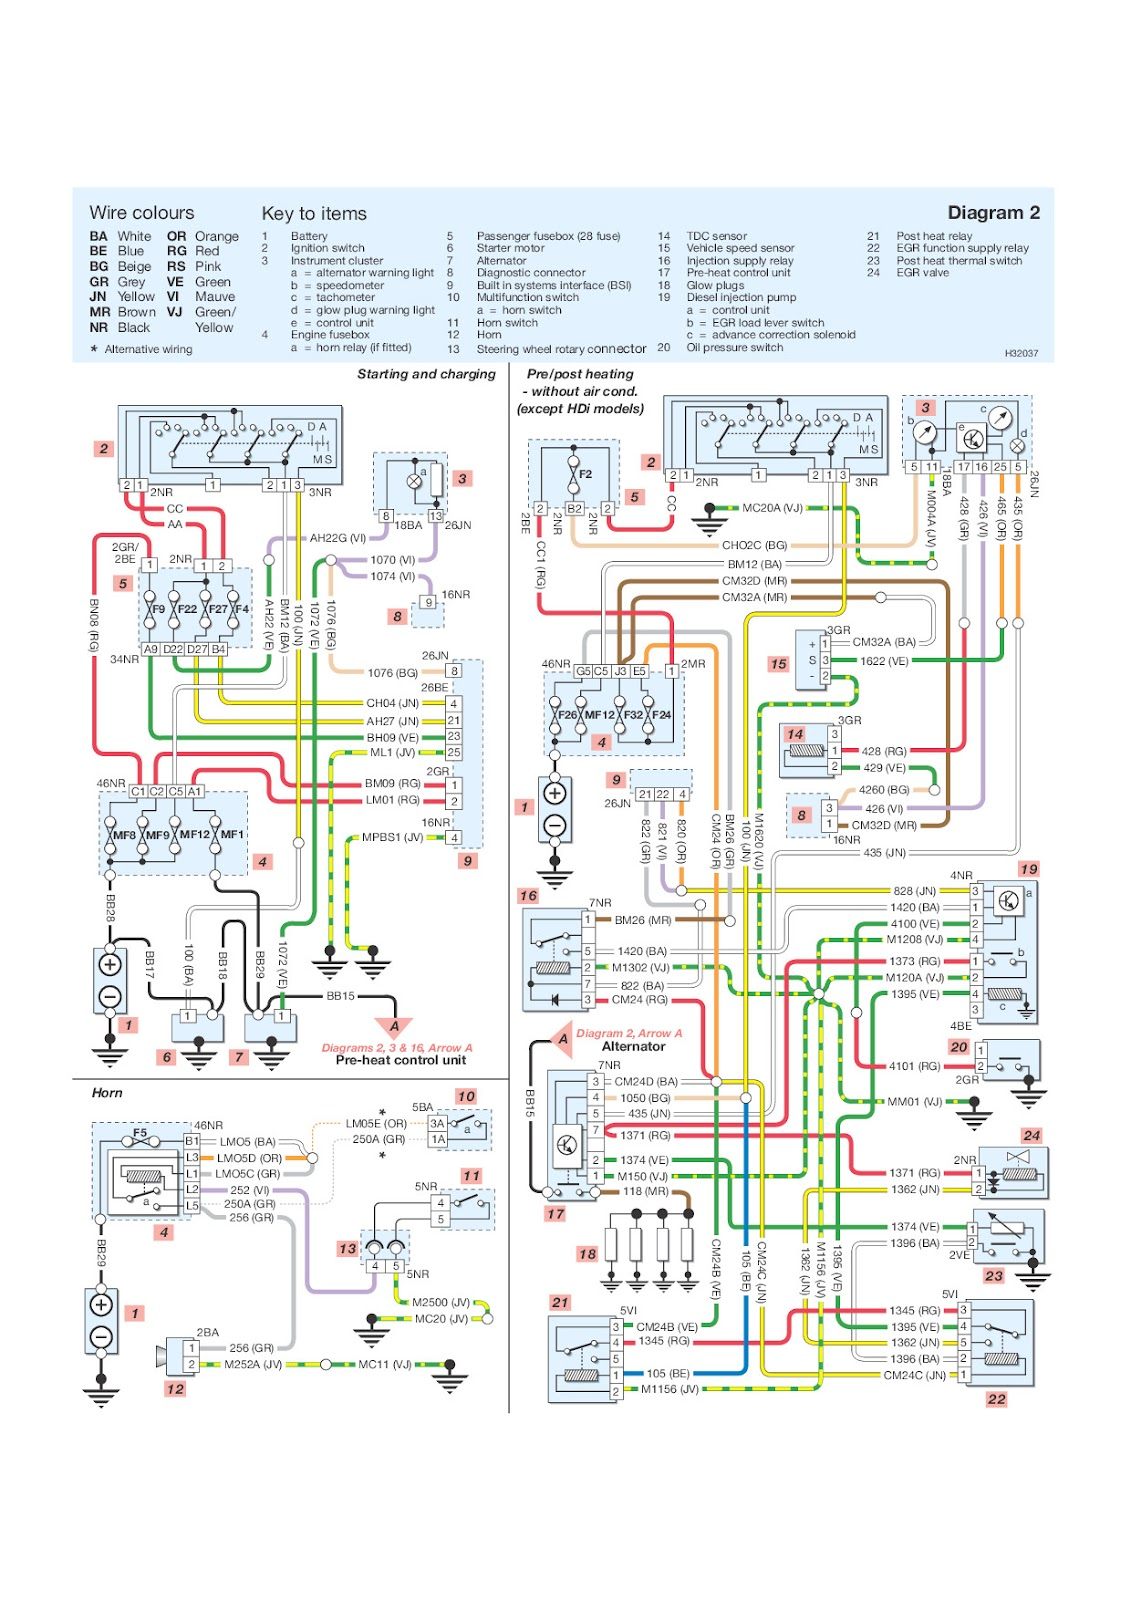 peugeot 206 fuse box relay wiring diagram Peugeot 206 CC fuse box on peugeot 206 wiring diagram